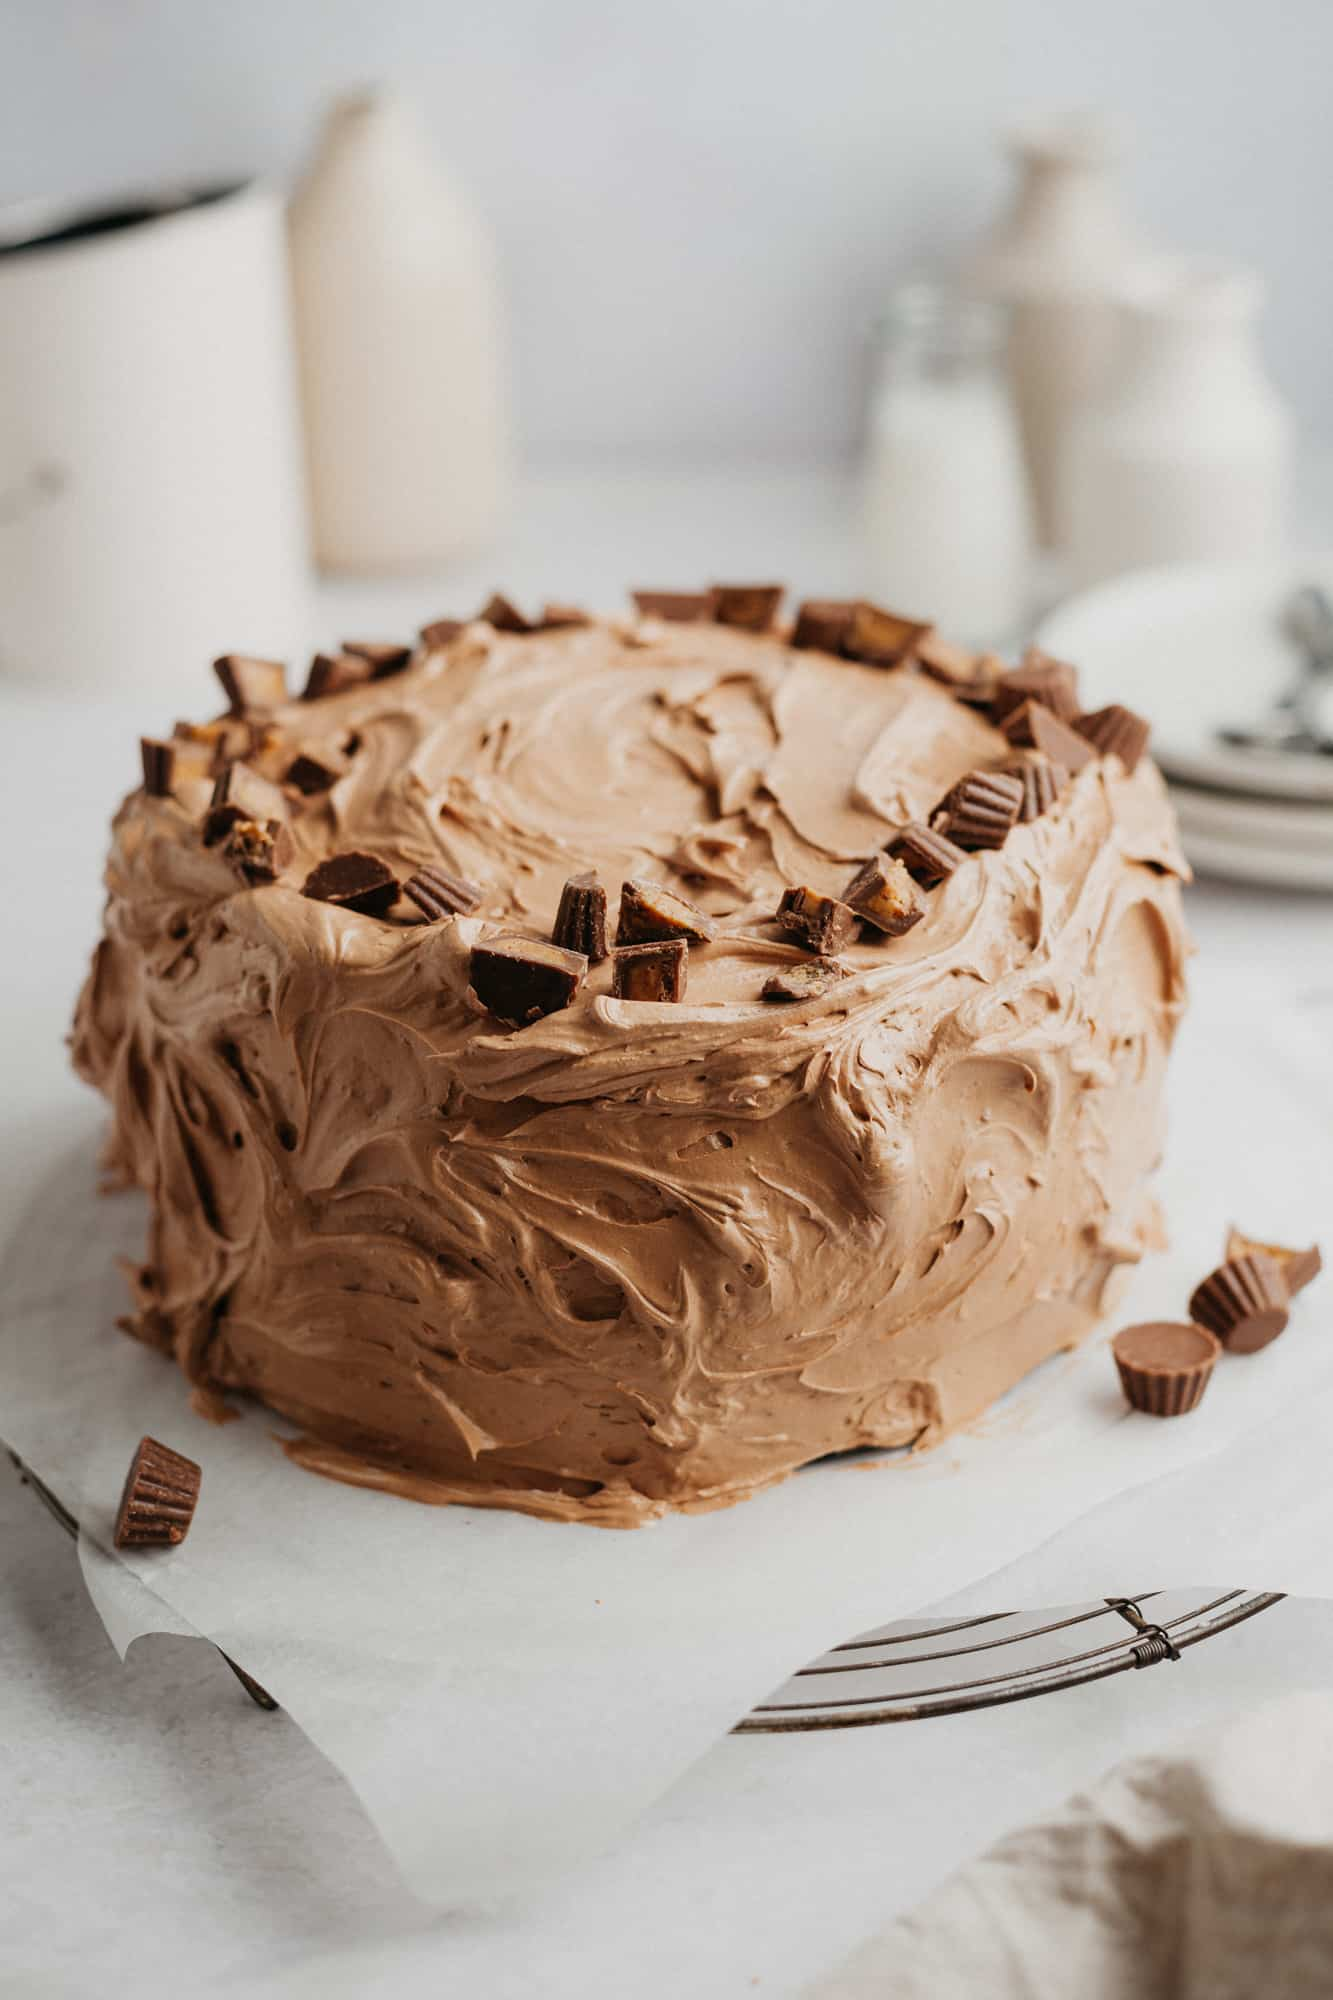 A chocolate cake with chocolate frosting. The top is covered in chopped miniature peanut butter cups. The cake is on parchment paper.